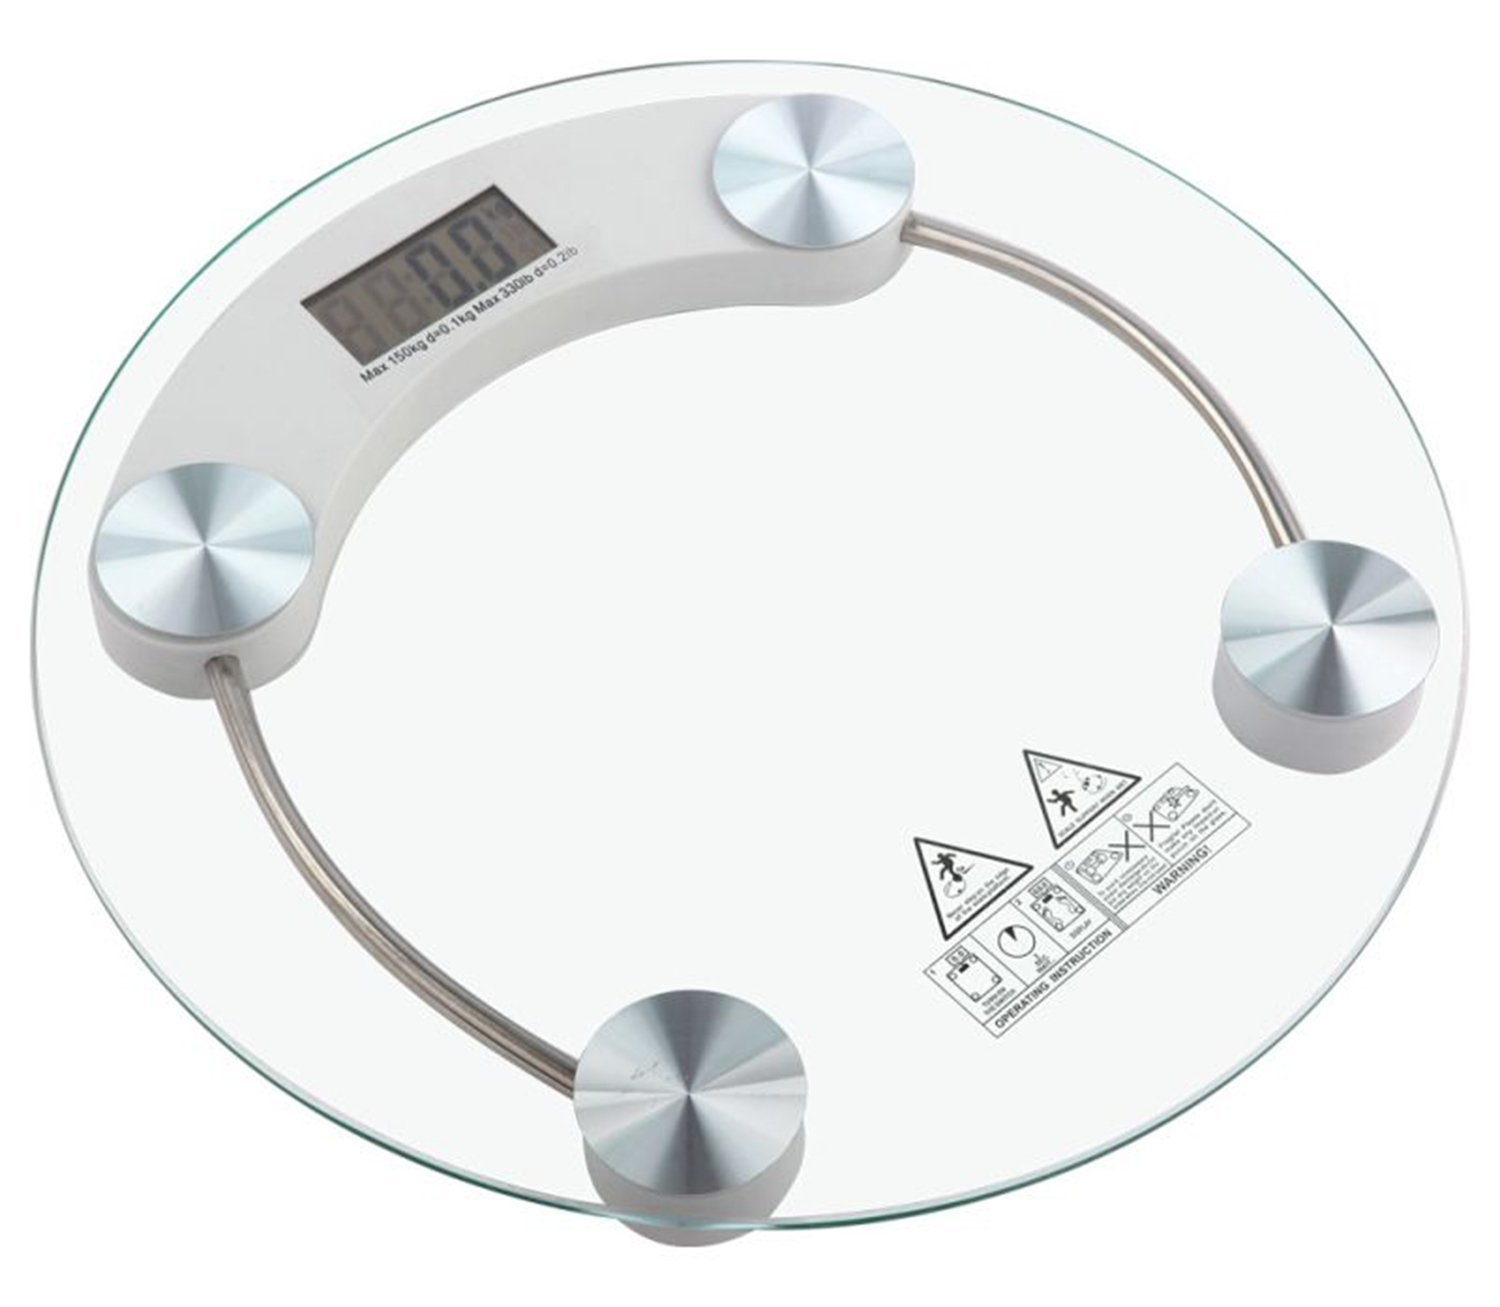 Generic RW150 Glass 150kg Clear Digital Bathroom Round Weighing Scale